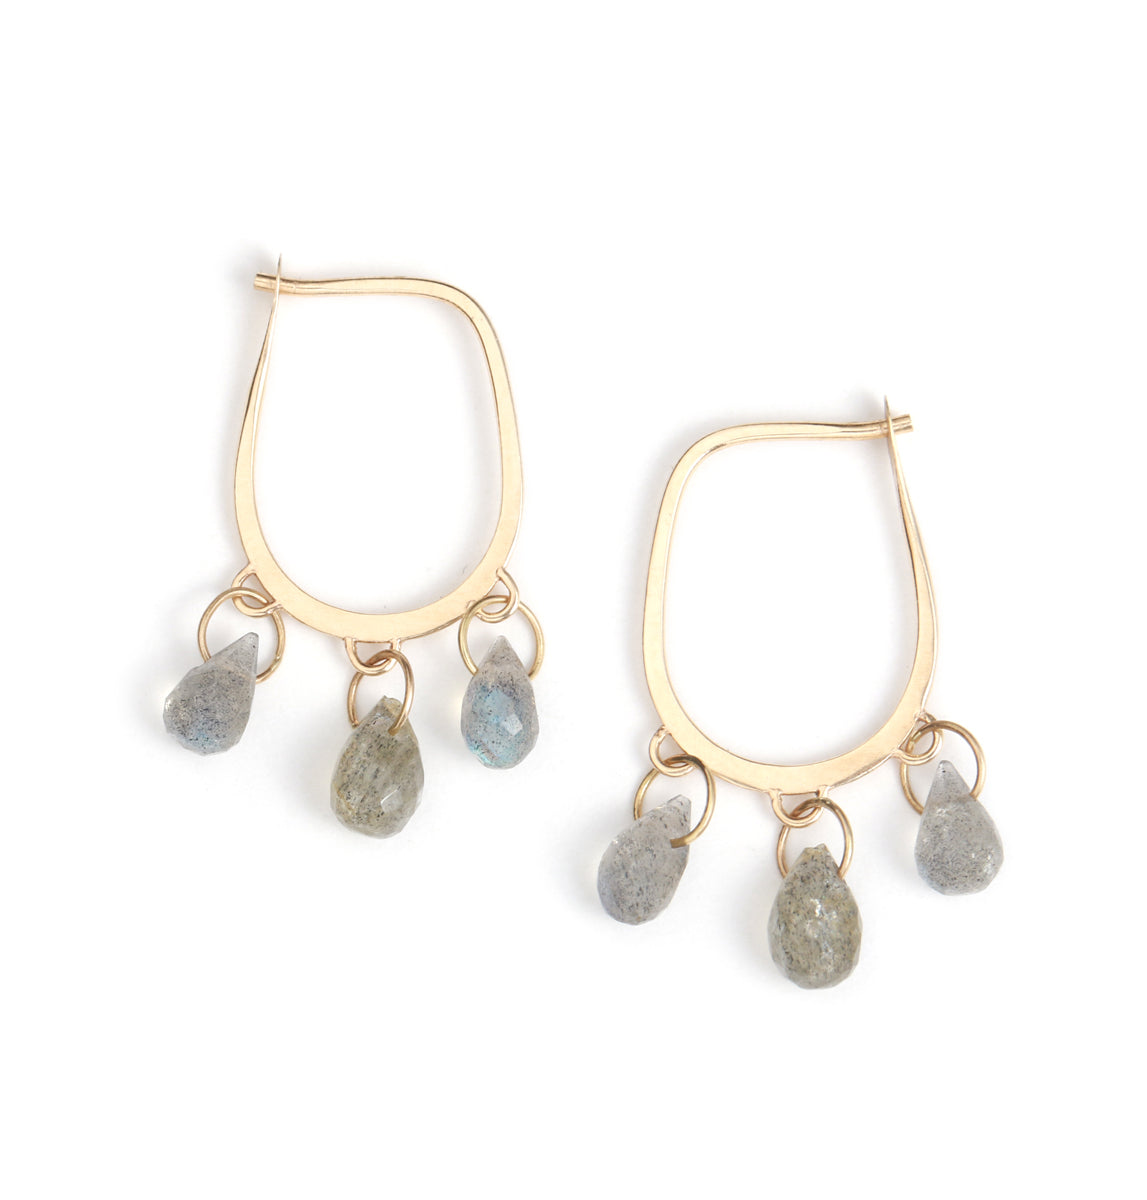 Tear drop hoops with 6 tiny labradorite drops